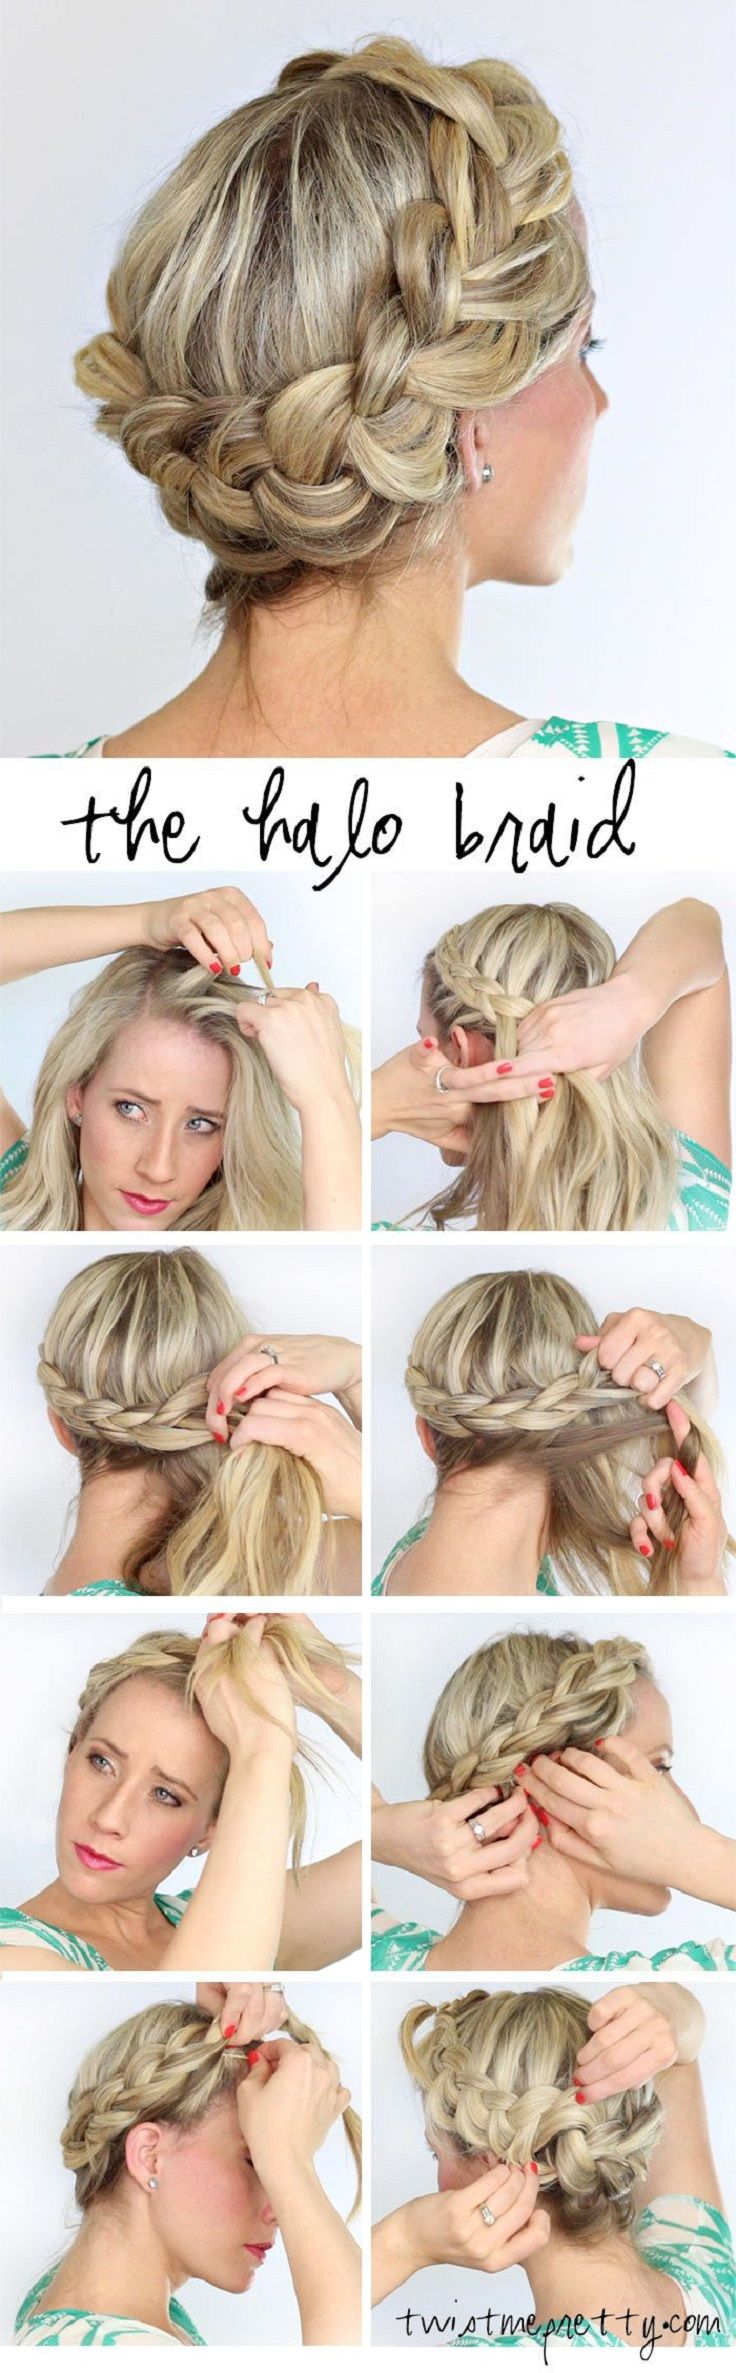 Awe inspiring pinterest the world39s catalog of ideas updo hairstyles - Top 10 Messy Braided Hairstyle Tutorials To Be Stylish This Fall